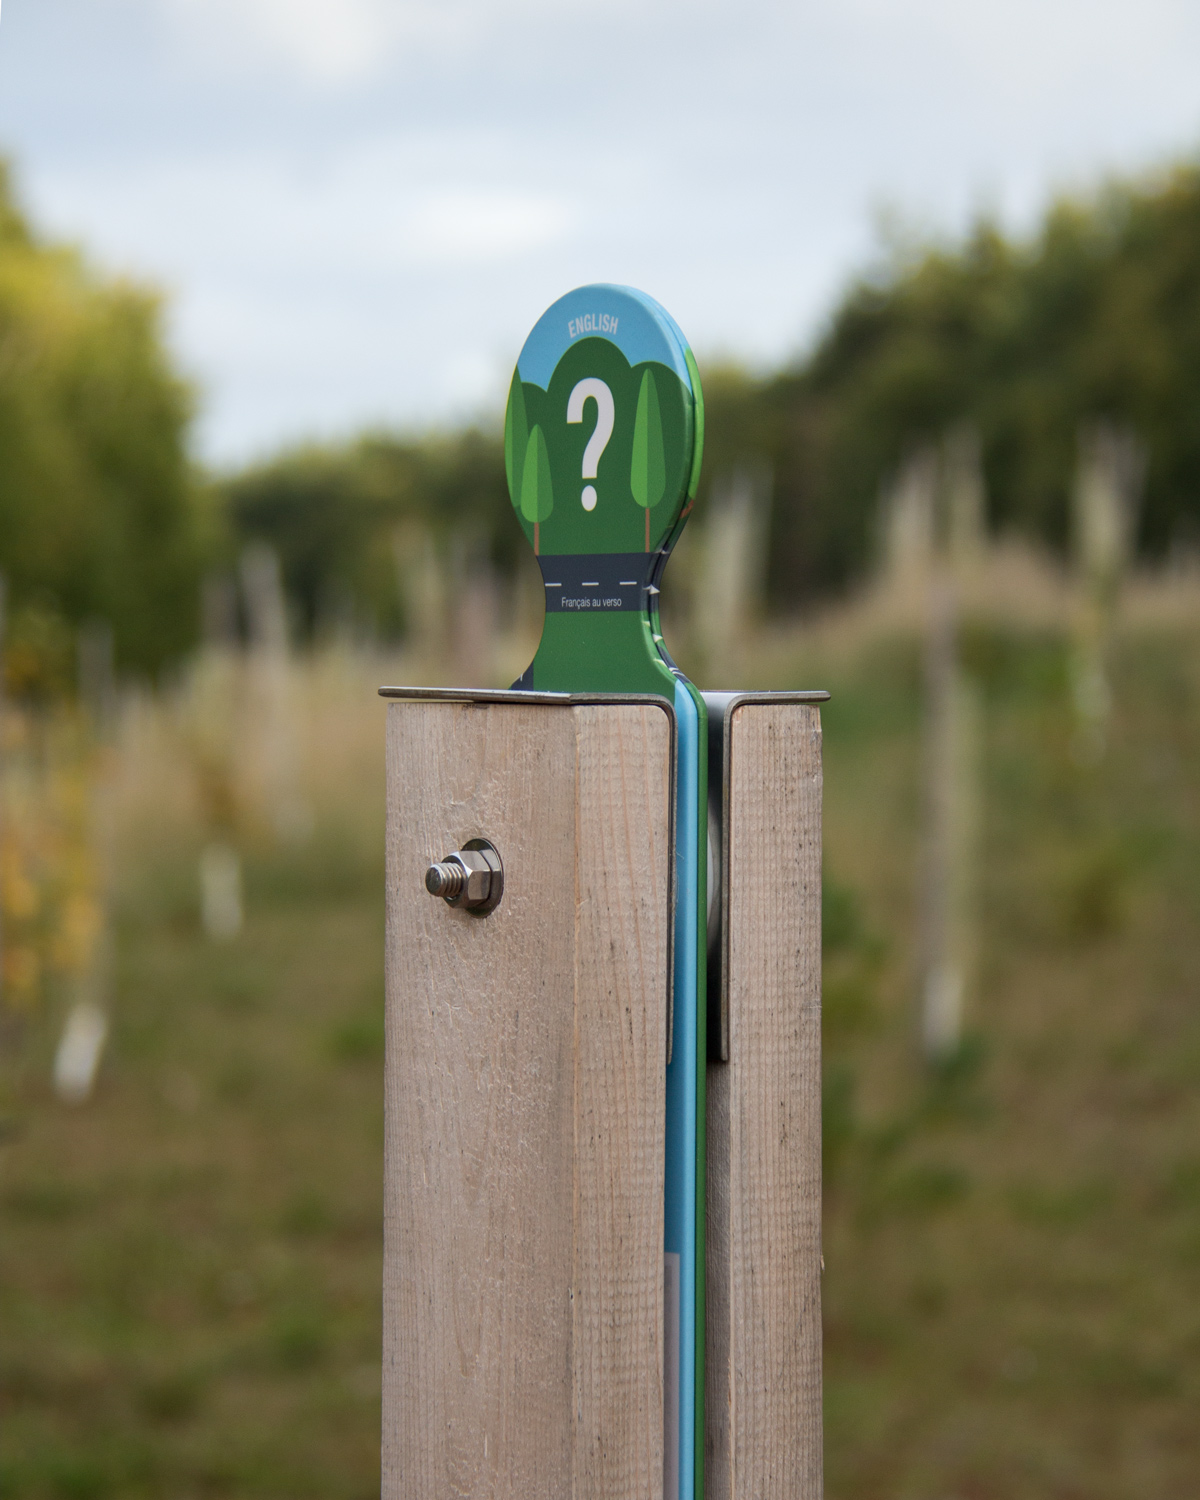 A SIMPLE MARKER Wooden posts adorned with a simple graphic element indicate locations of interpretive content.